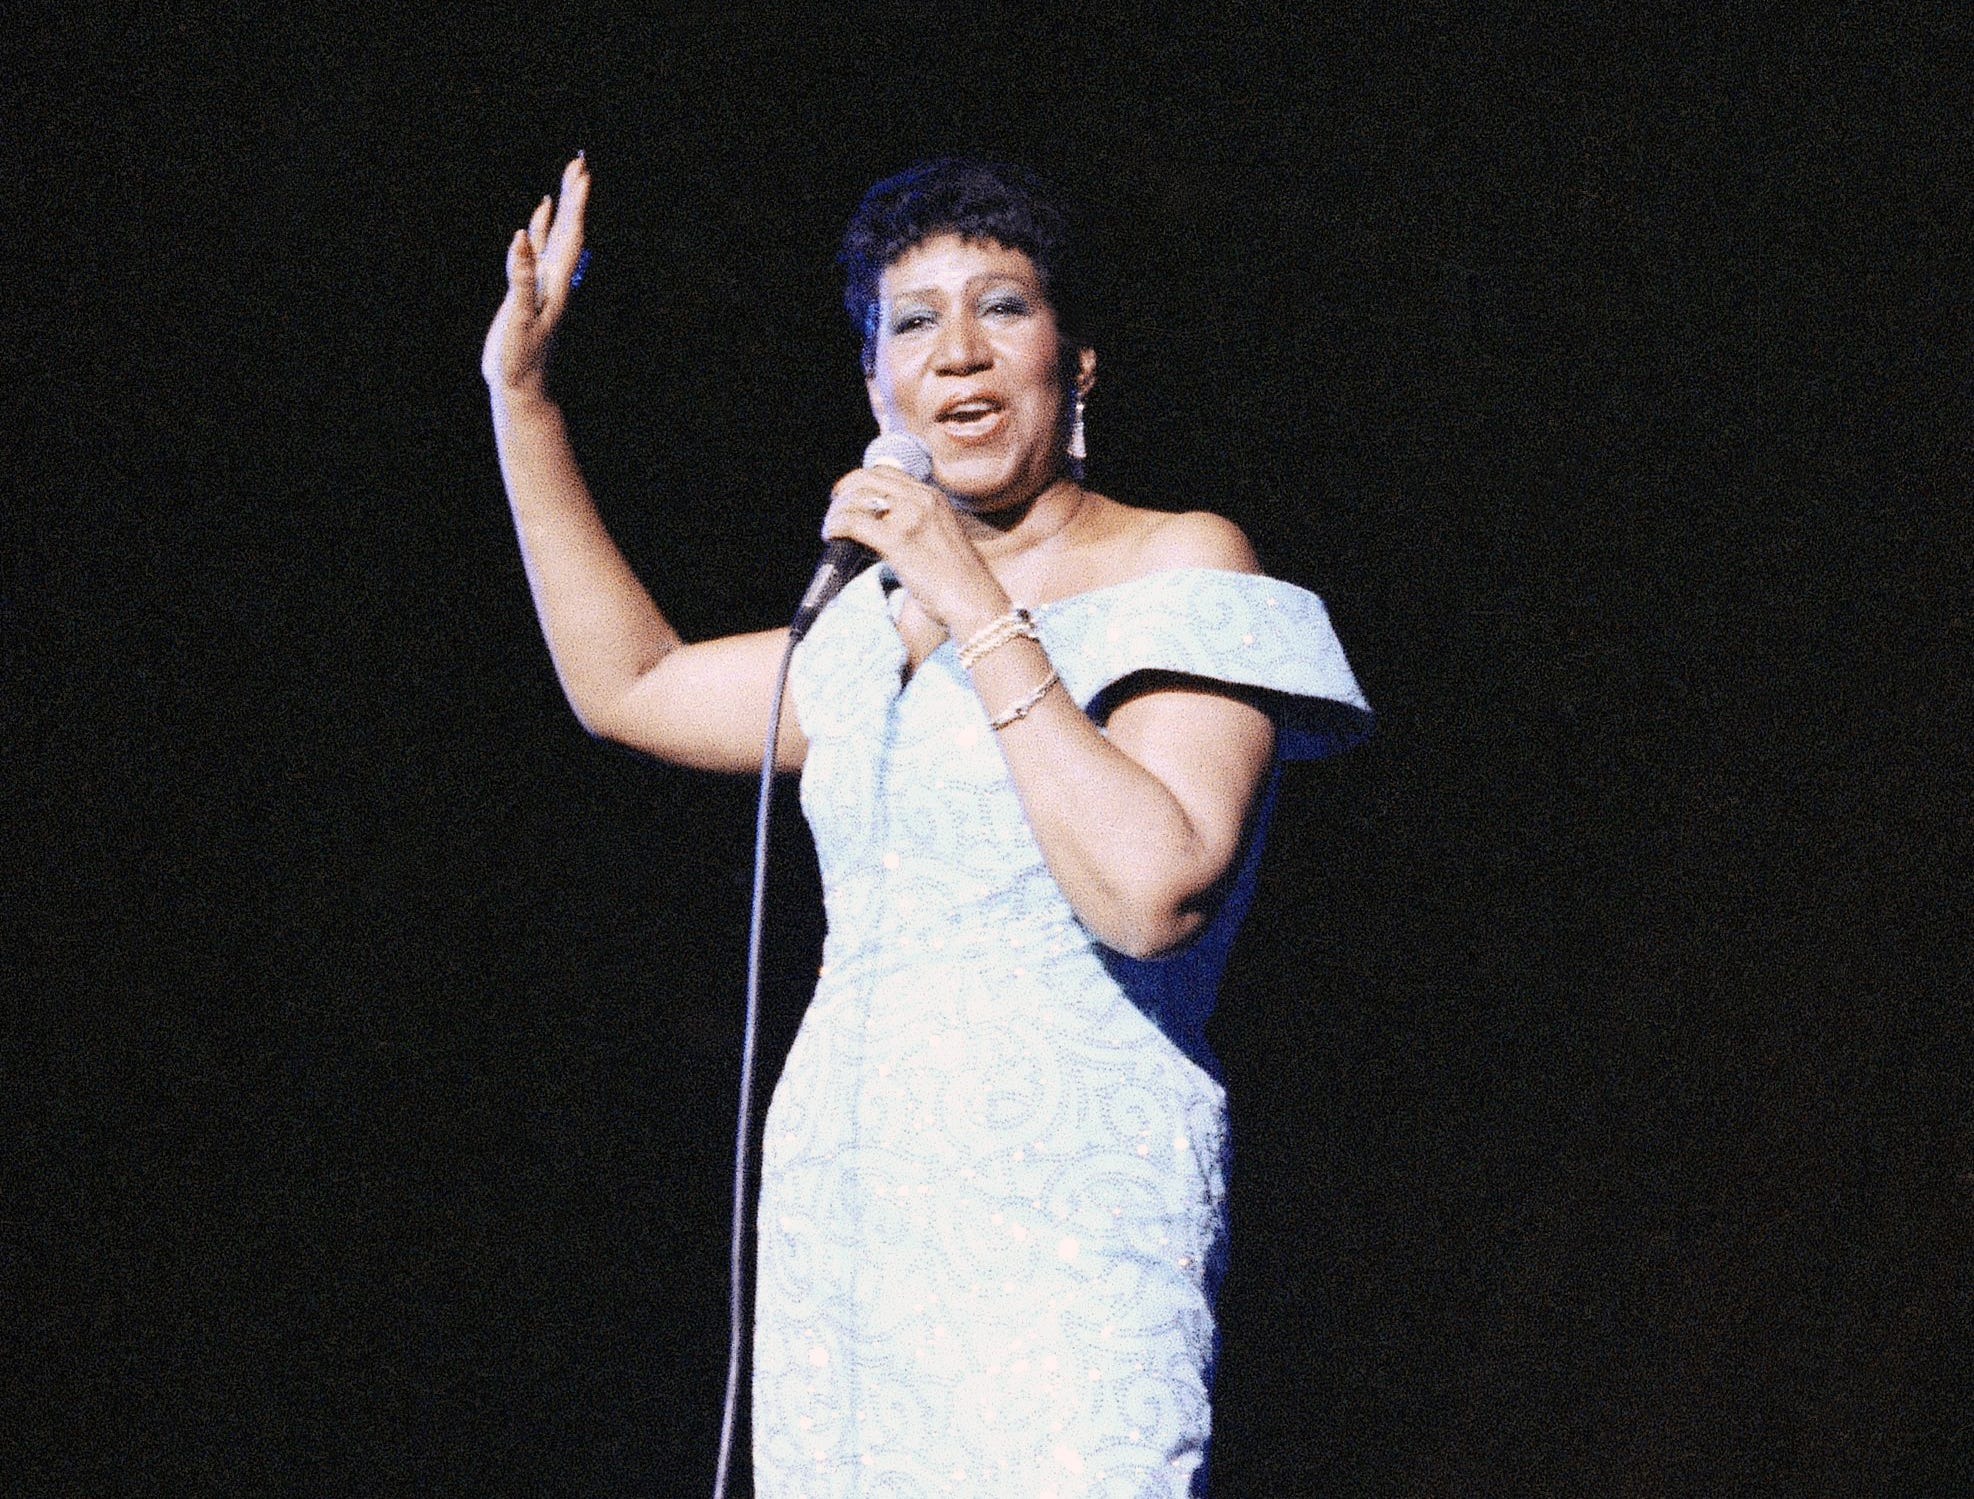 Aretha Franklin performs at New York's Radio City Music Hall, July 5, 1989. (AP Photo/Mario Suriani)